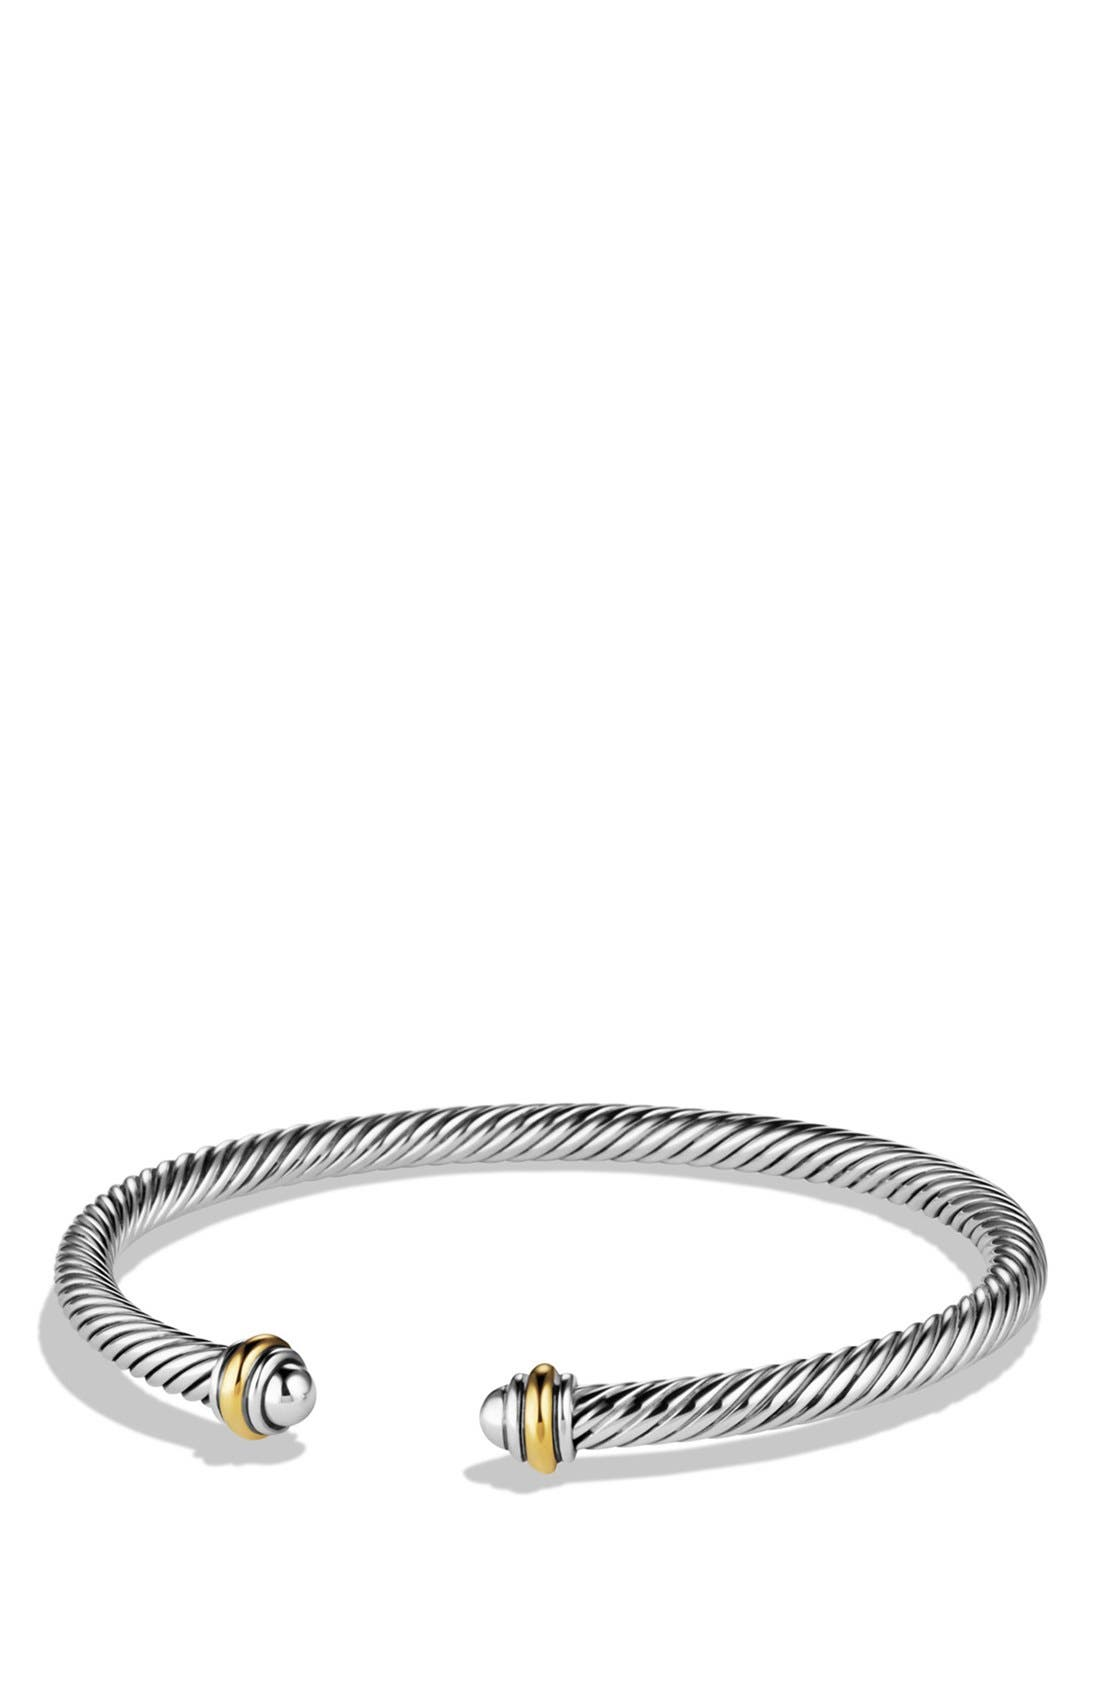 Alternate Image 1 Selected - David Yurman 'Cable Classics' Bracelet with Gold